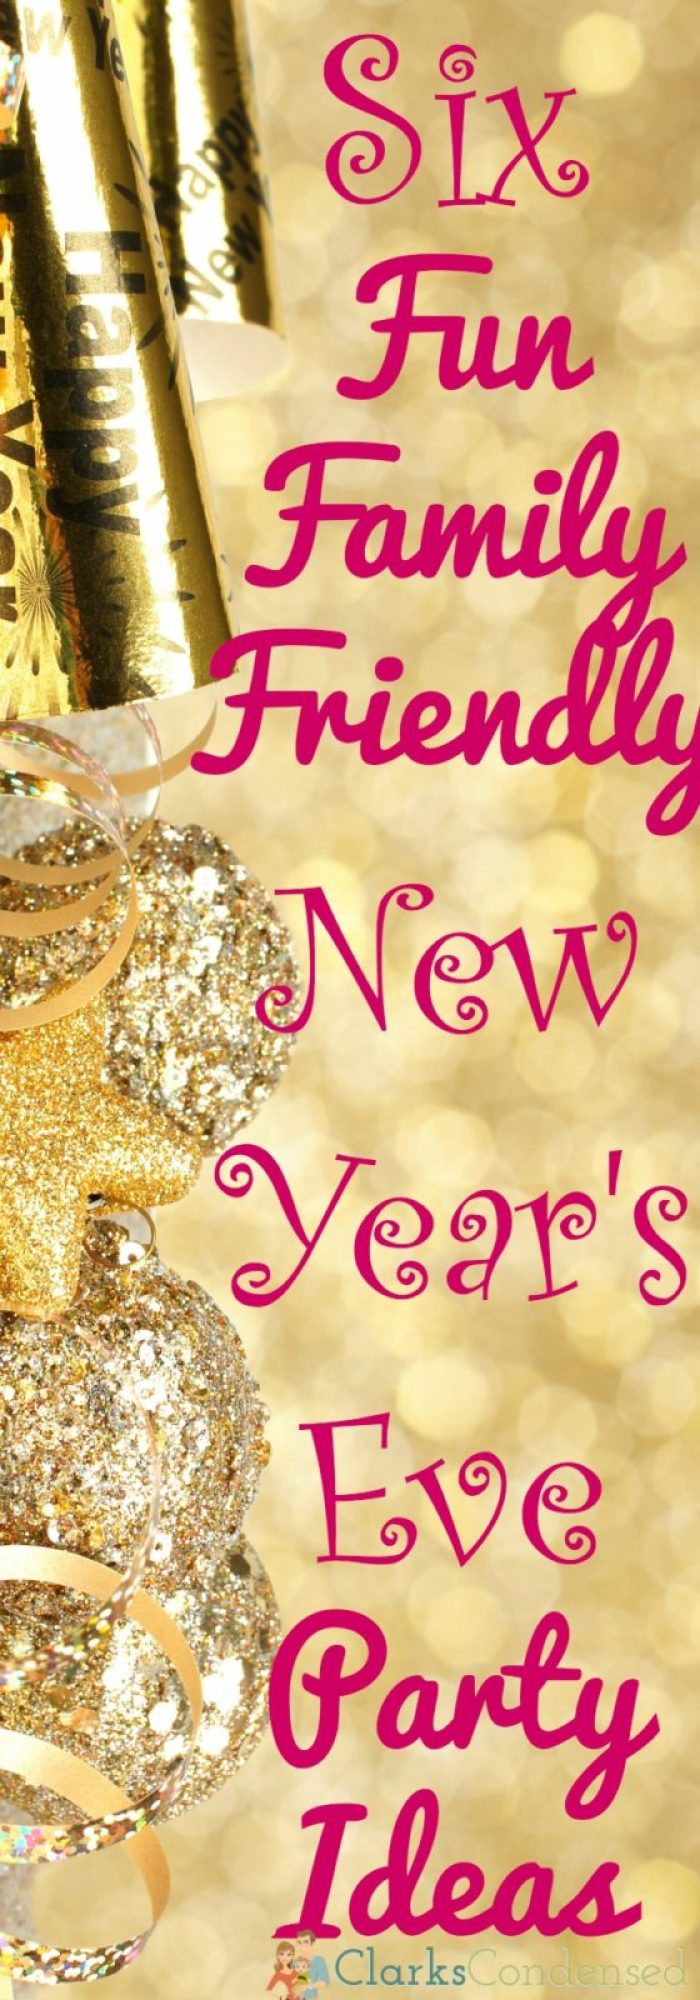 Family Friendly New Years Eve Parties Ideas